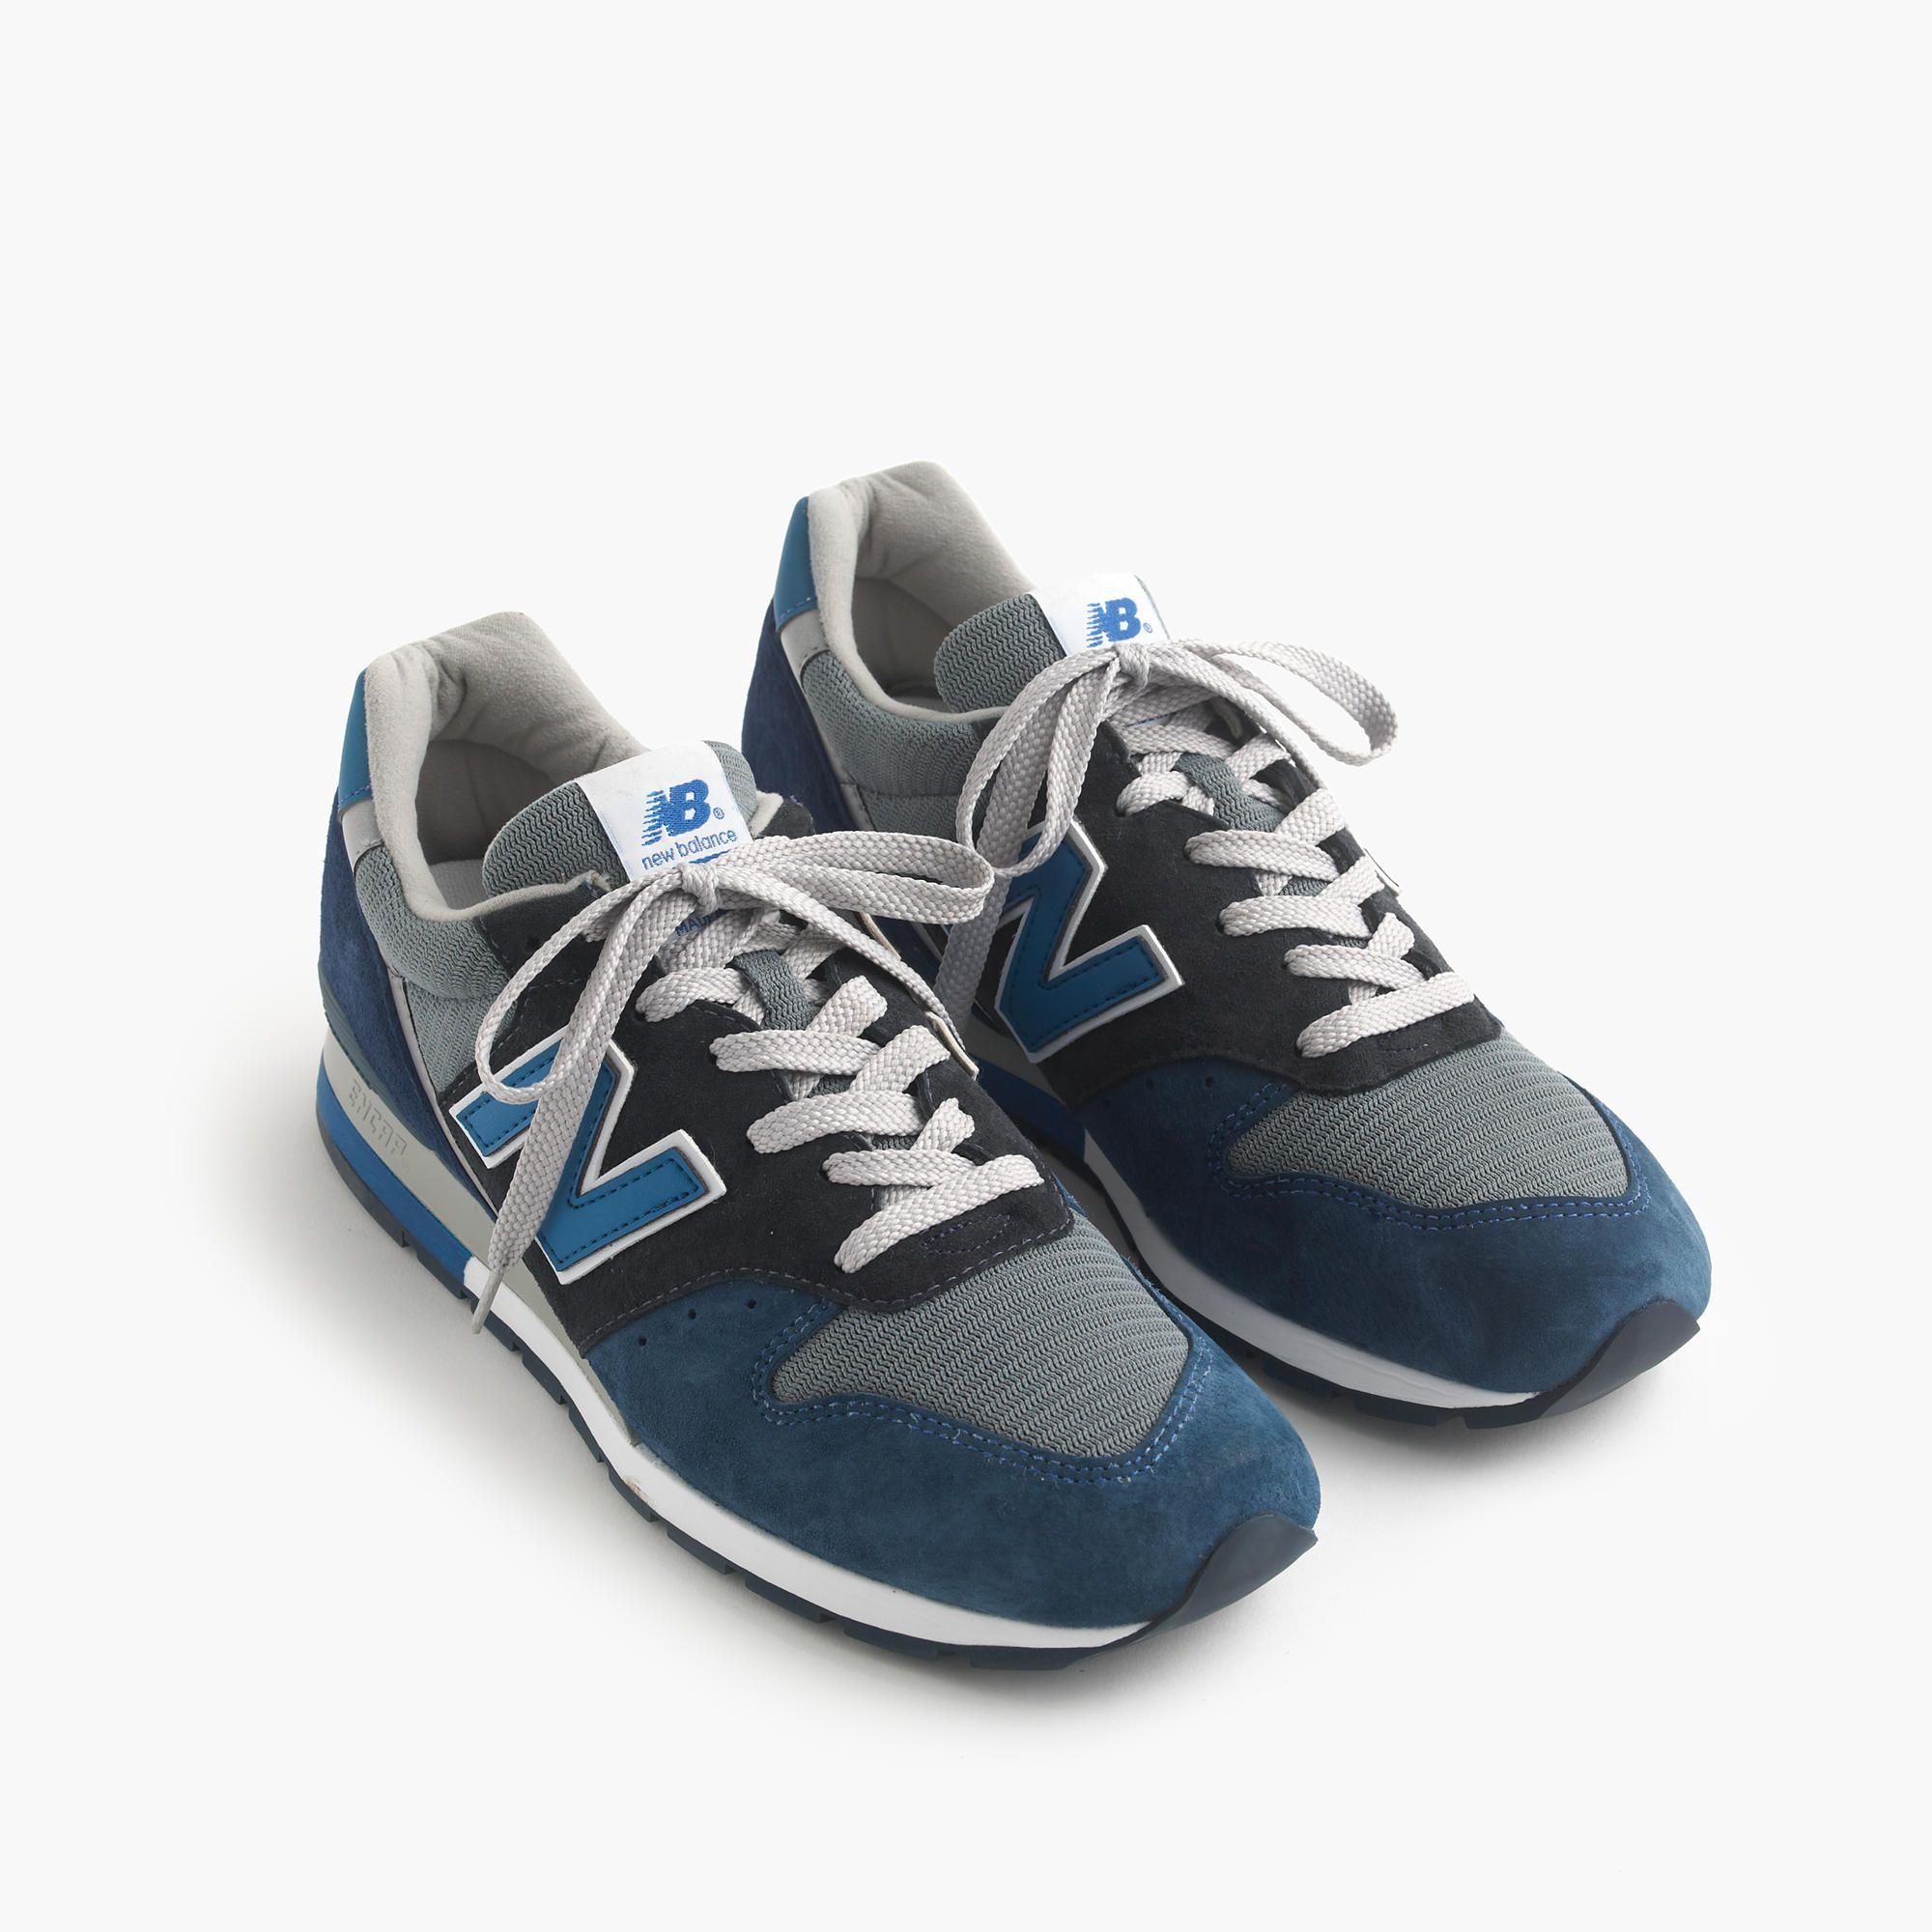 New Balance® for J.Crew 996 sneakers